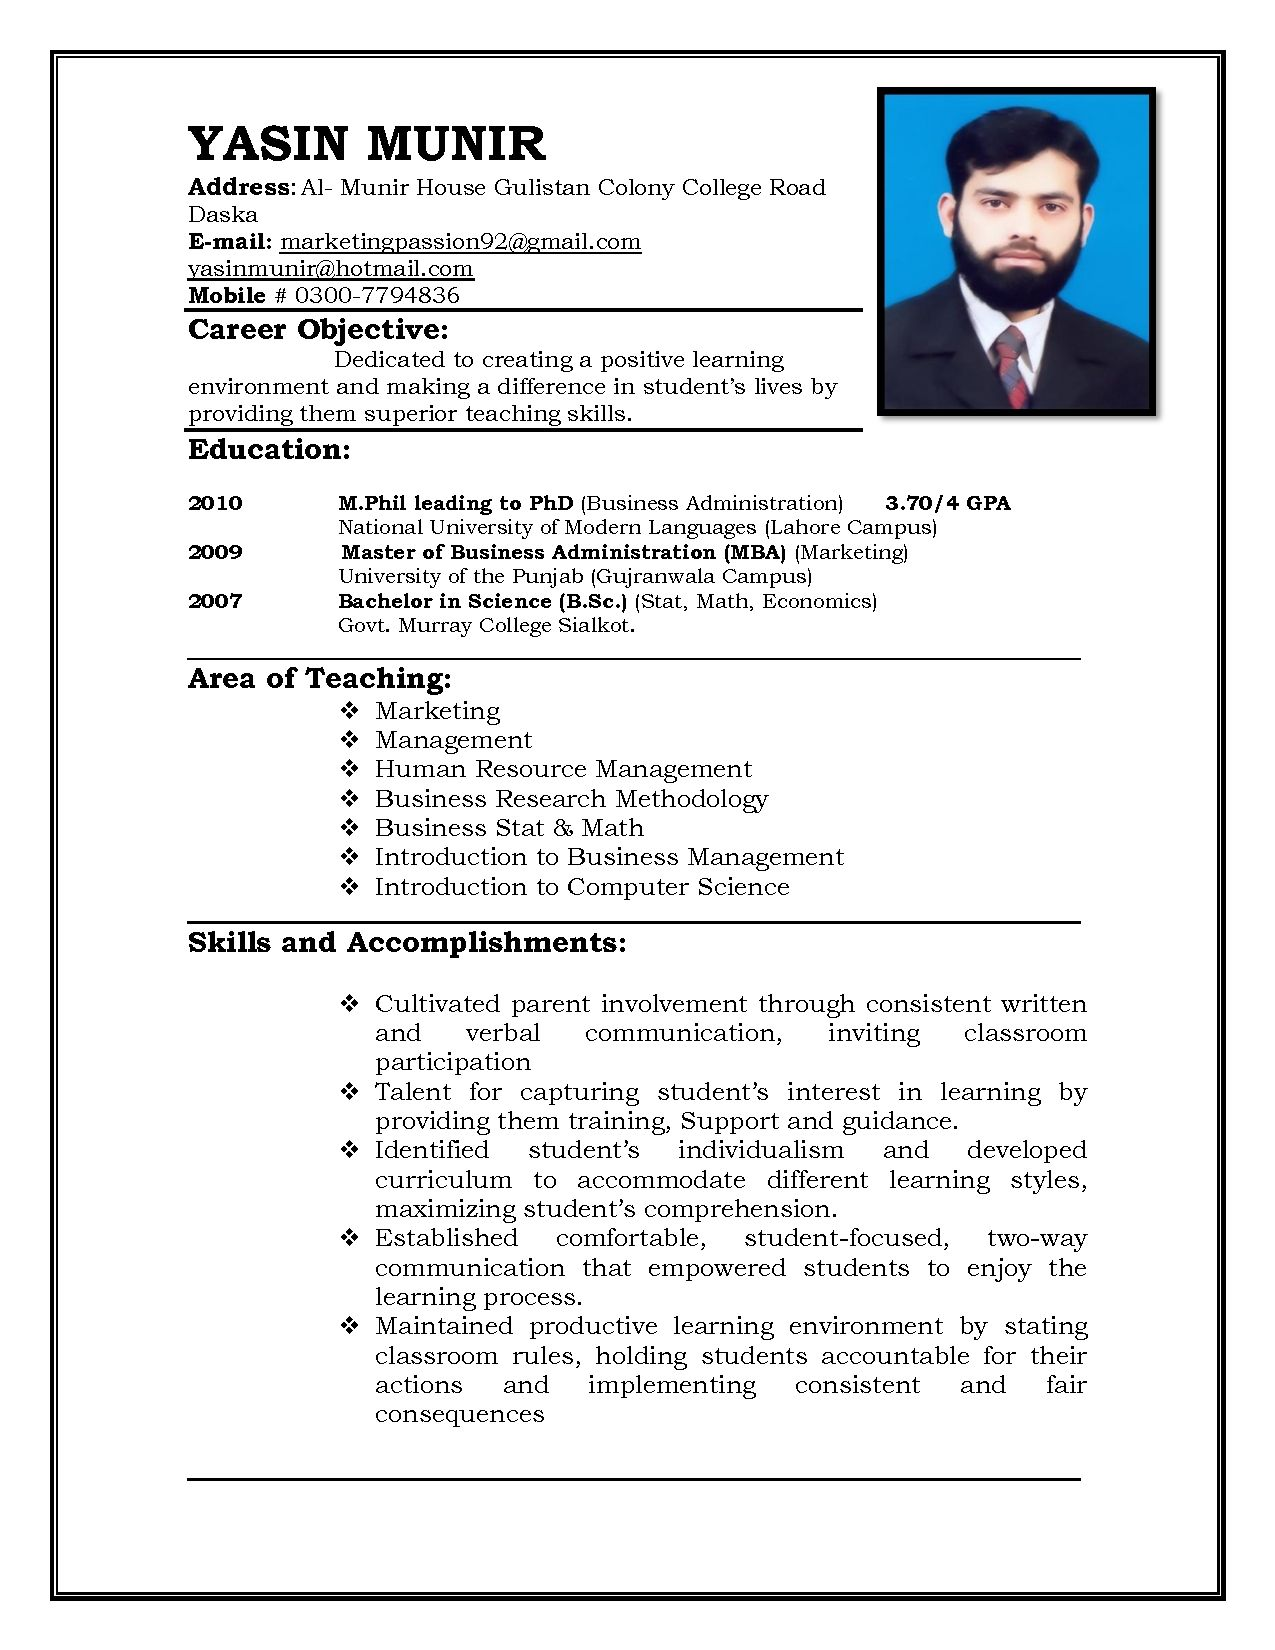 Sample resume for applying job inspiration decoration format non sample resume for applying job inspiration decoration format non profit controller cover letter application example yelopaper Images